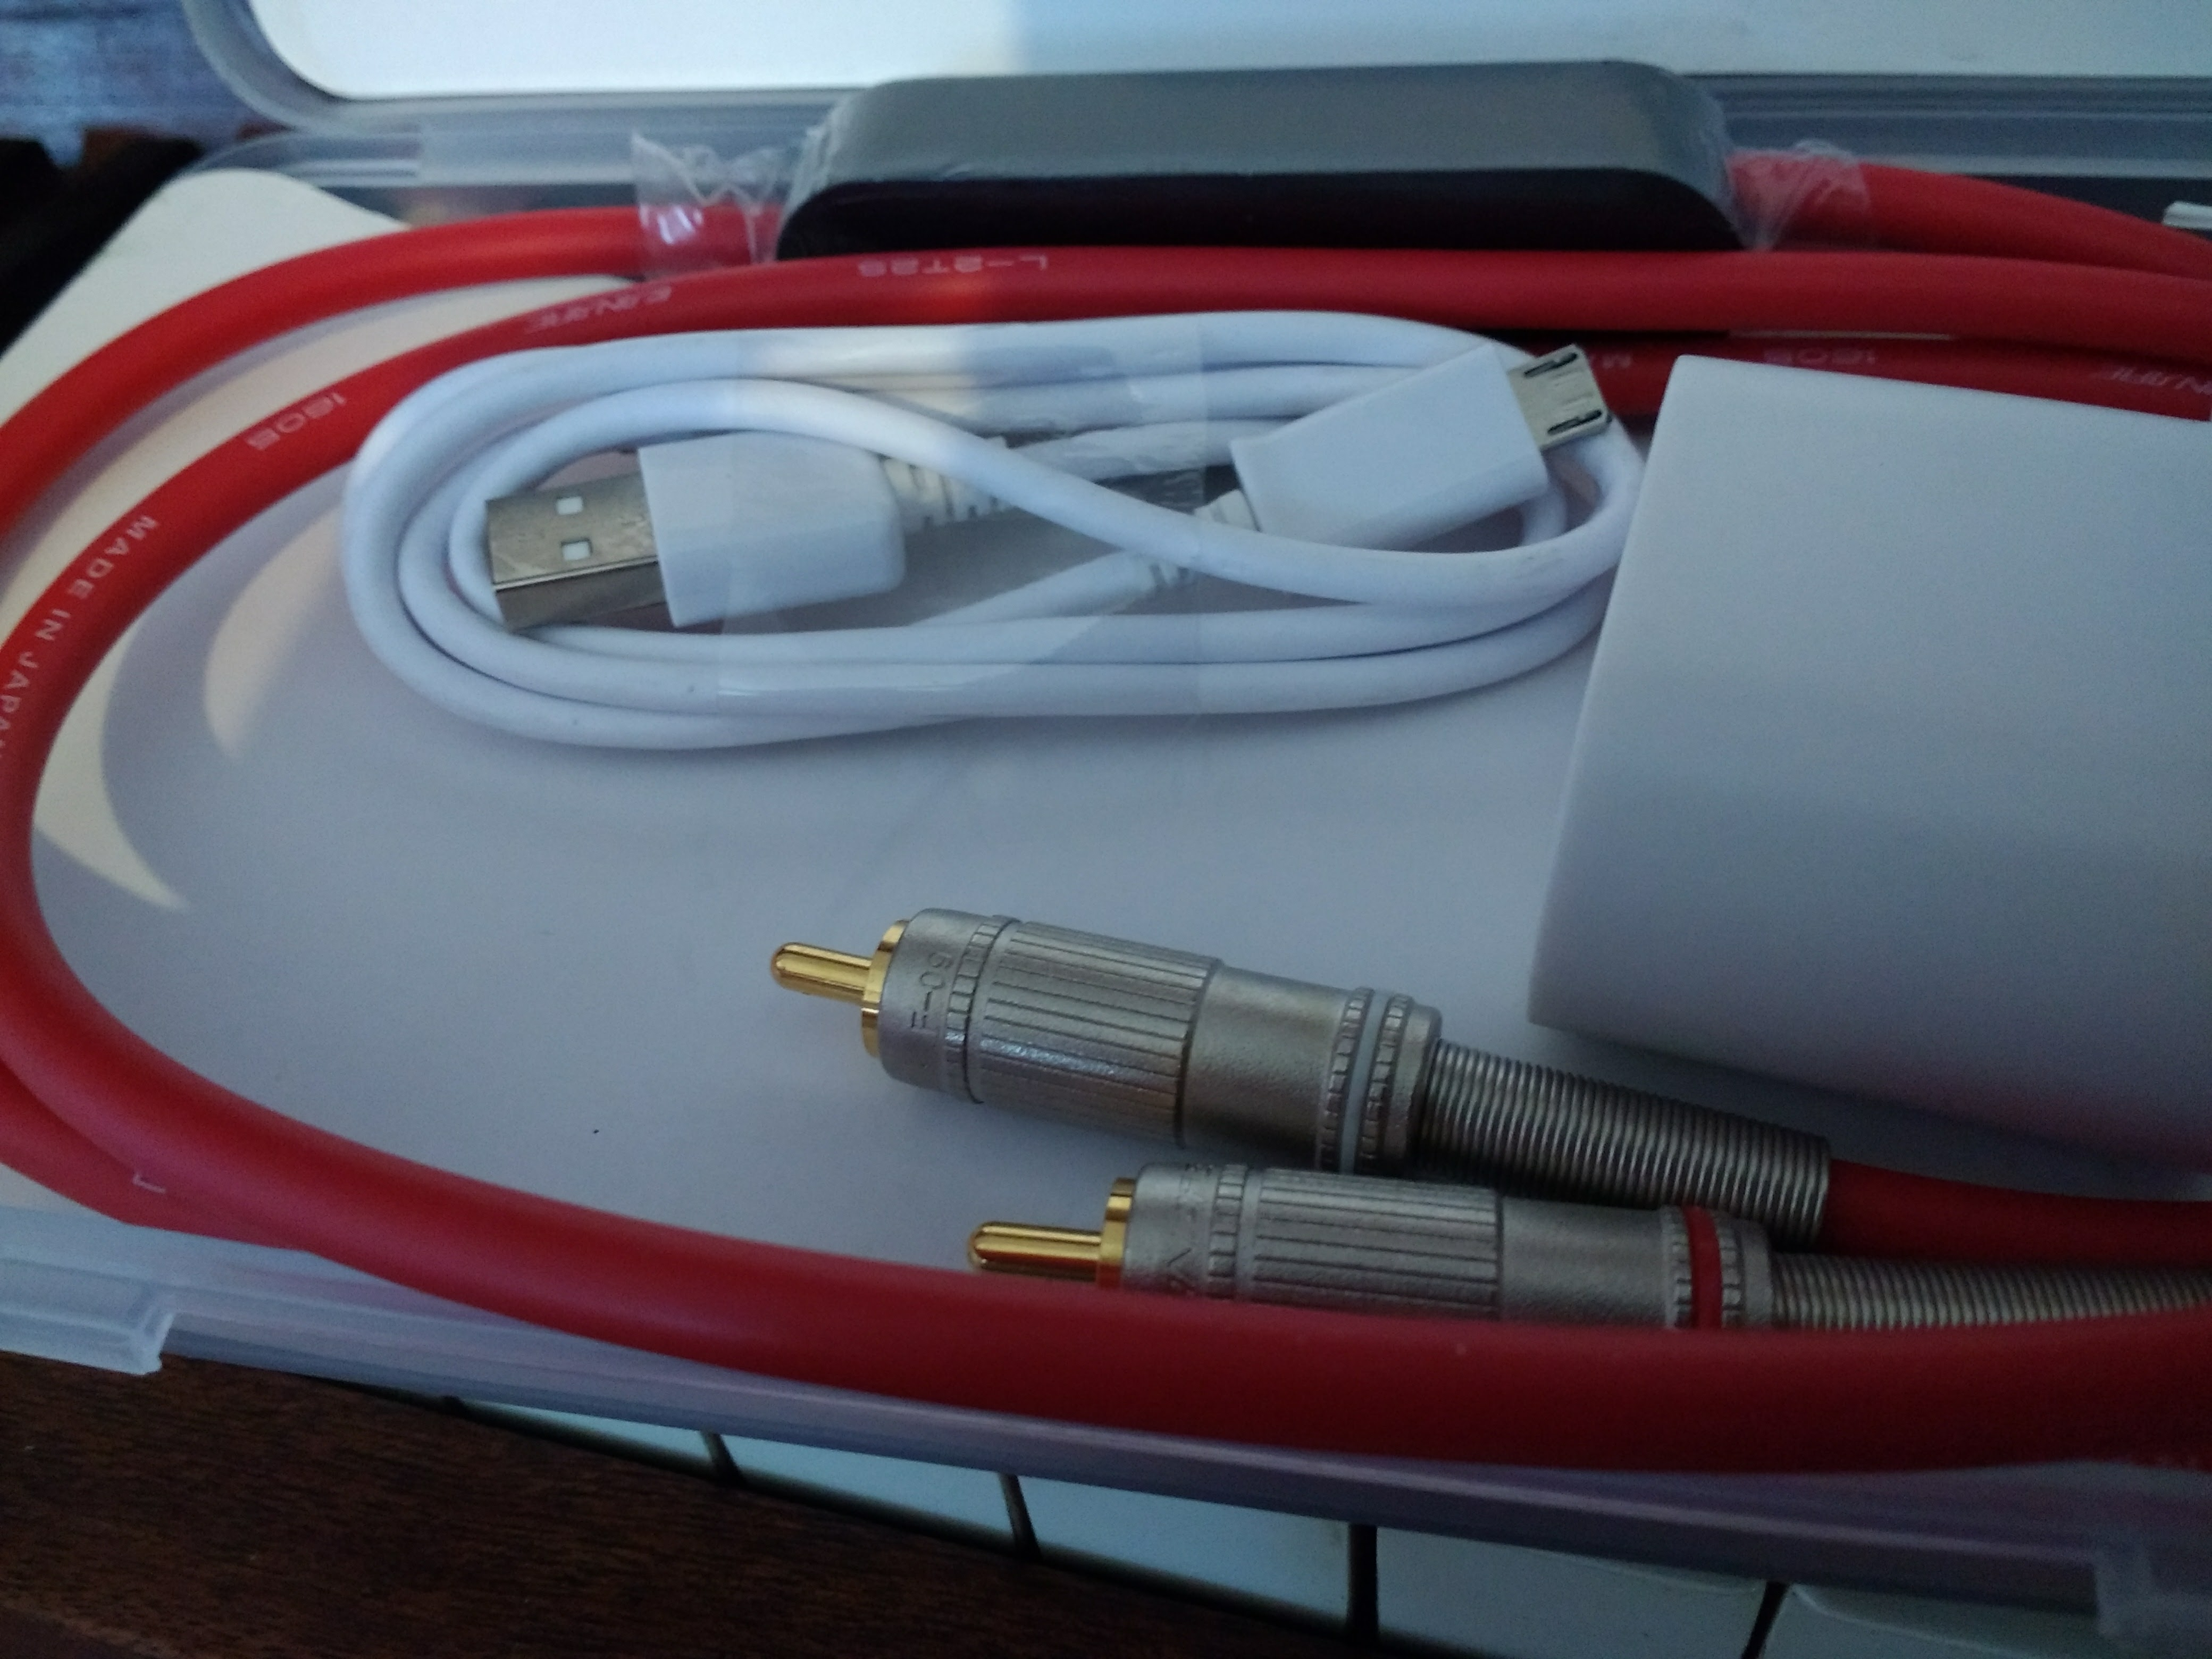 Burson Audio Cable+ Pro   Reviews   Page 2   Headphone Reviews and ...